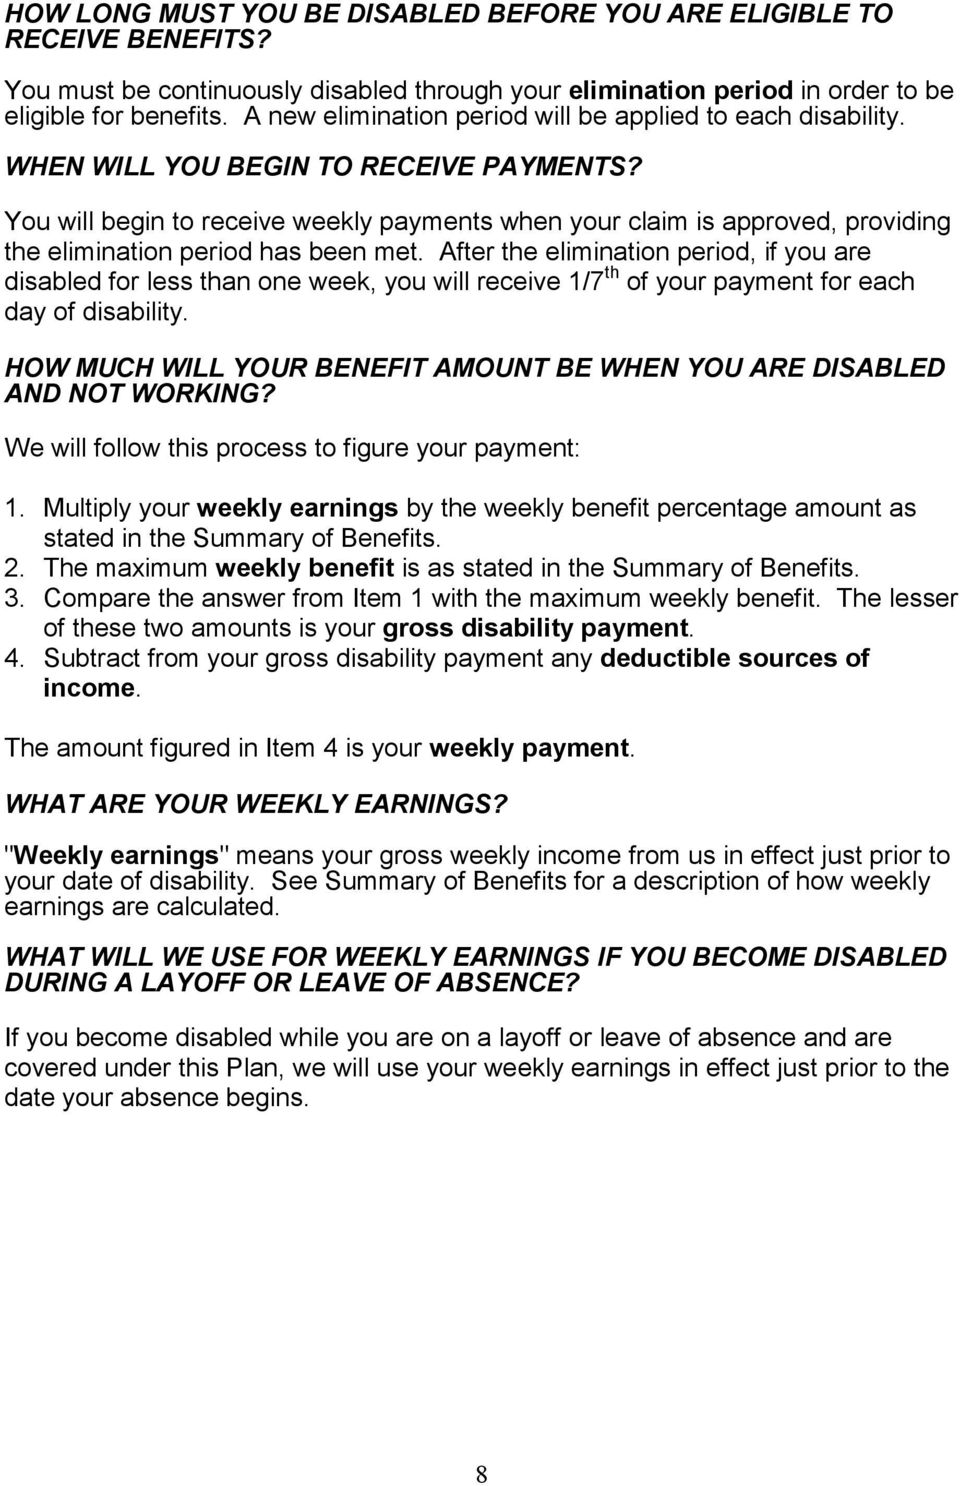 You will begin to receive weekly payments when your claim is approved, providing the elimination period has been met.